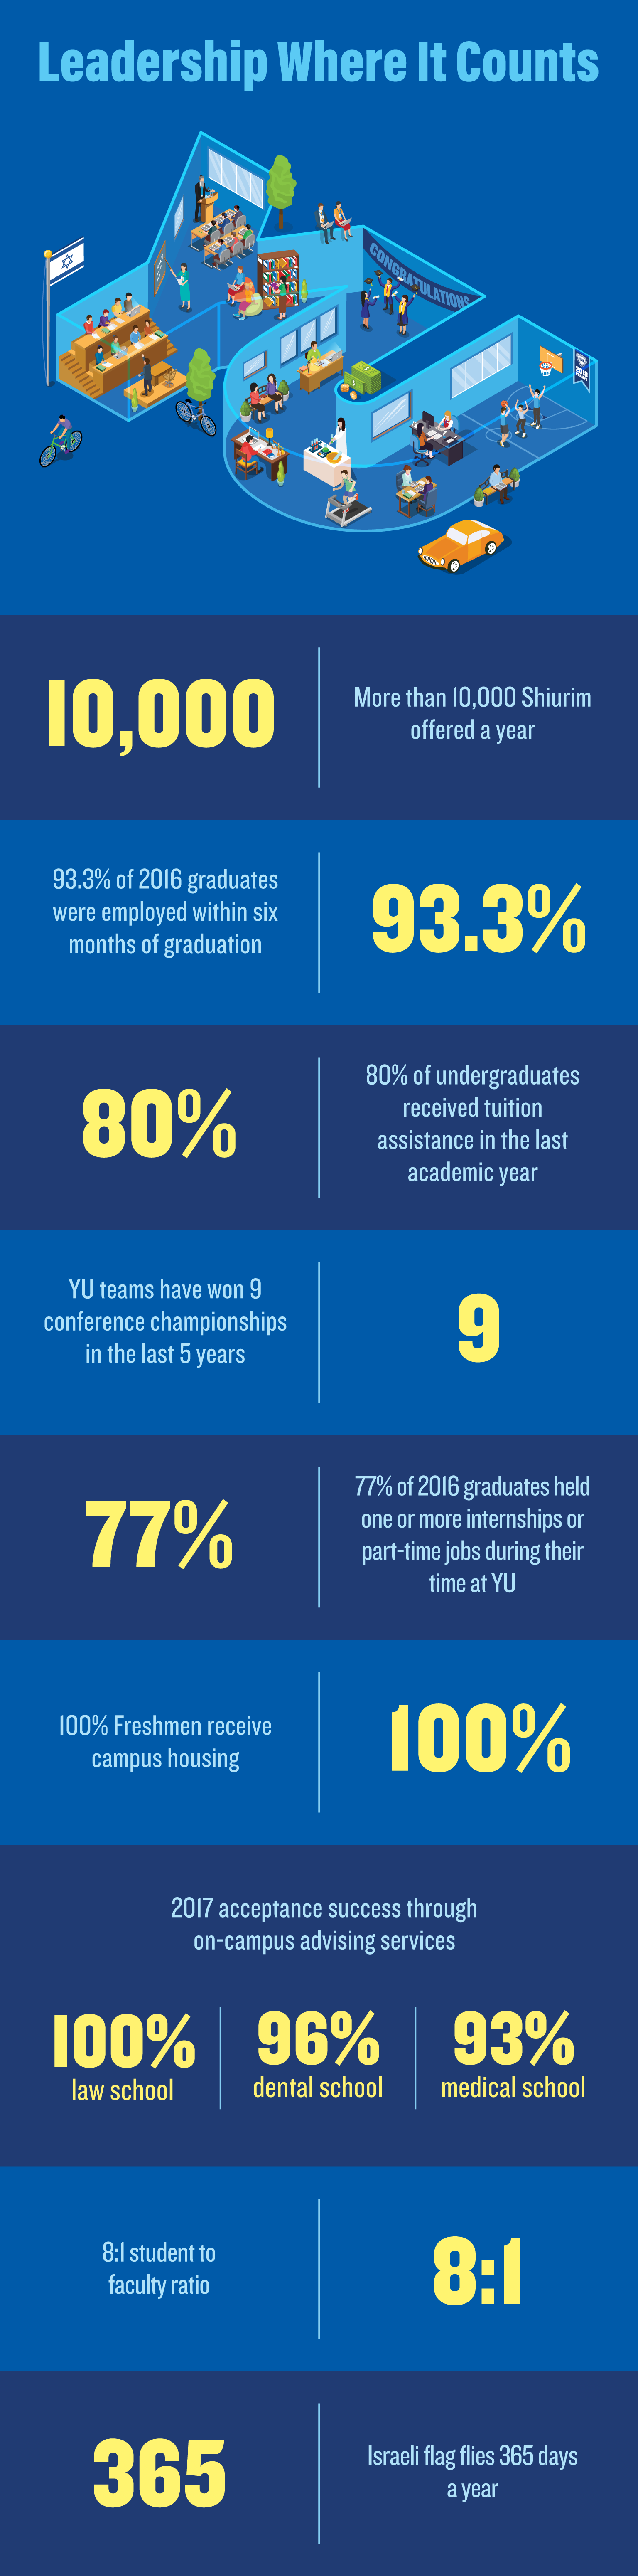 Image displays statistics about Yeshiva University, including: 100% law school, 96% dental school, 93% medical school, 2017 acceptance success though on-campus advising services